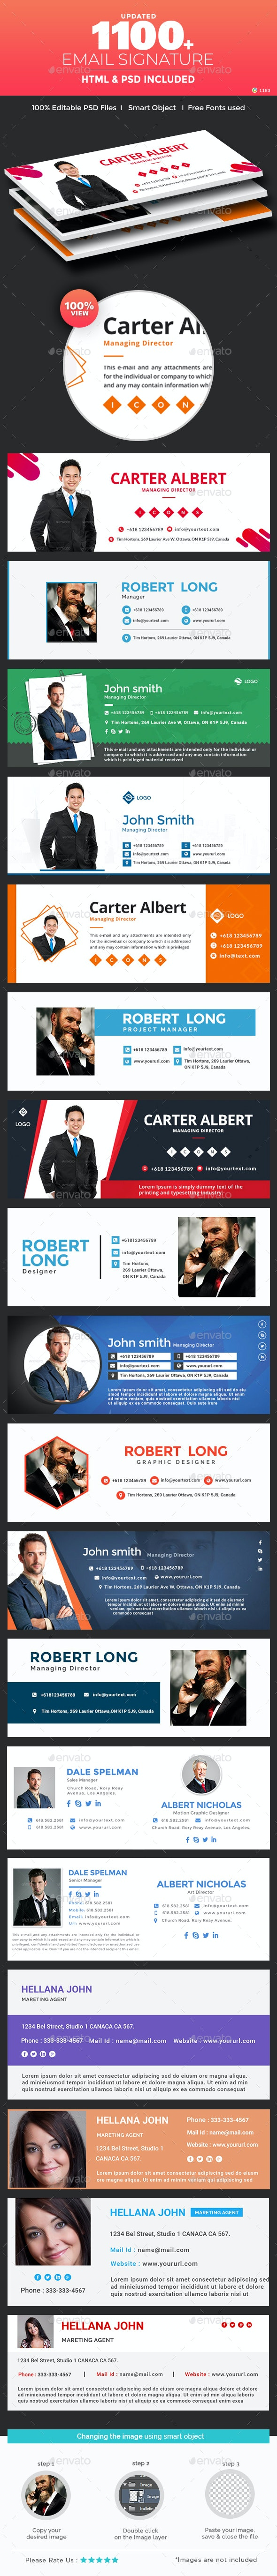 Email Signature Pack - 1100+ HTML and PSD Files - UPDATED!!! - Miscellaneous Social Media